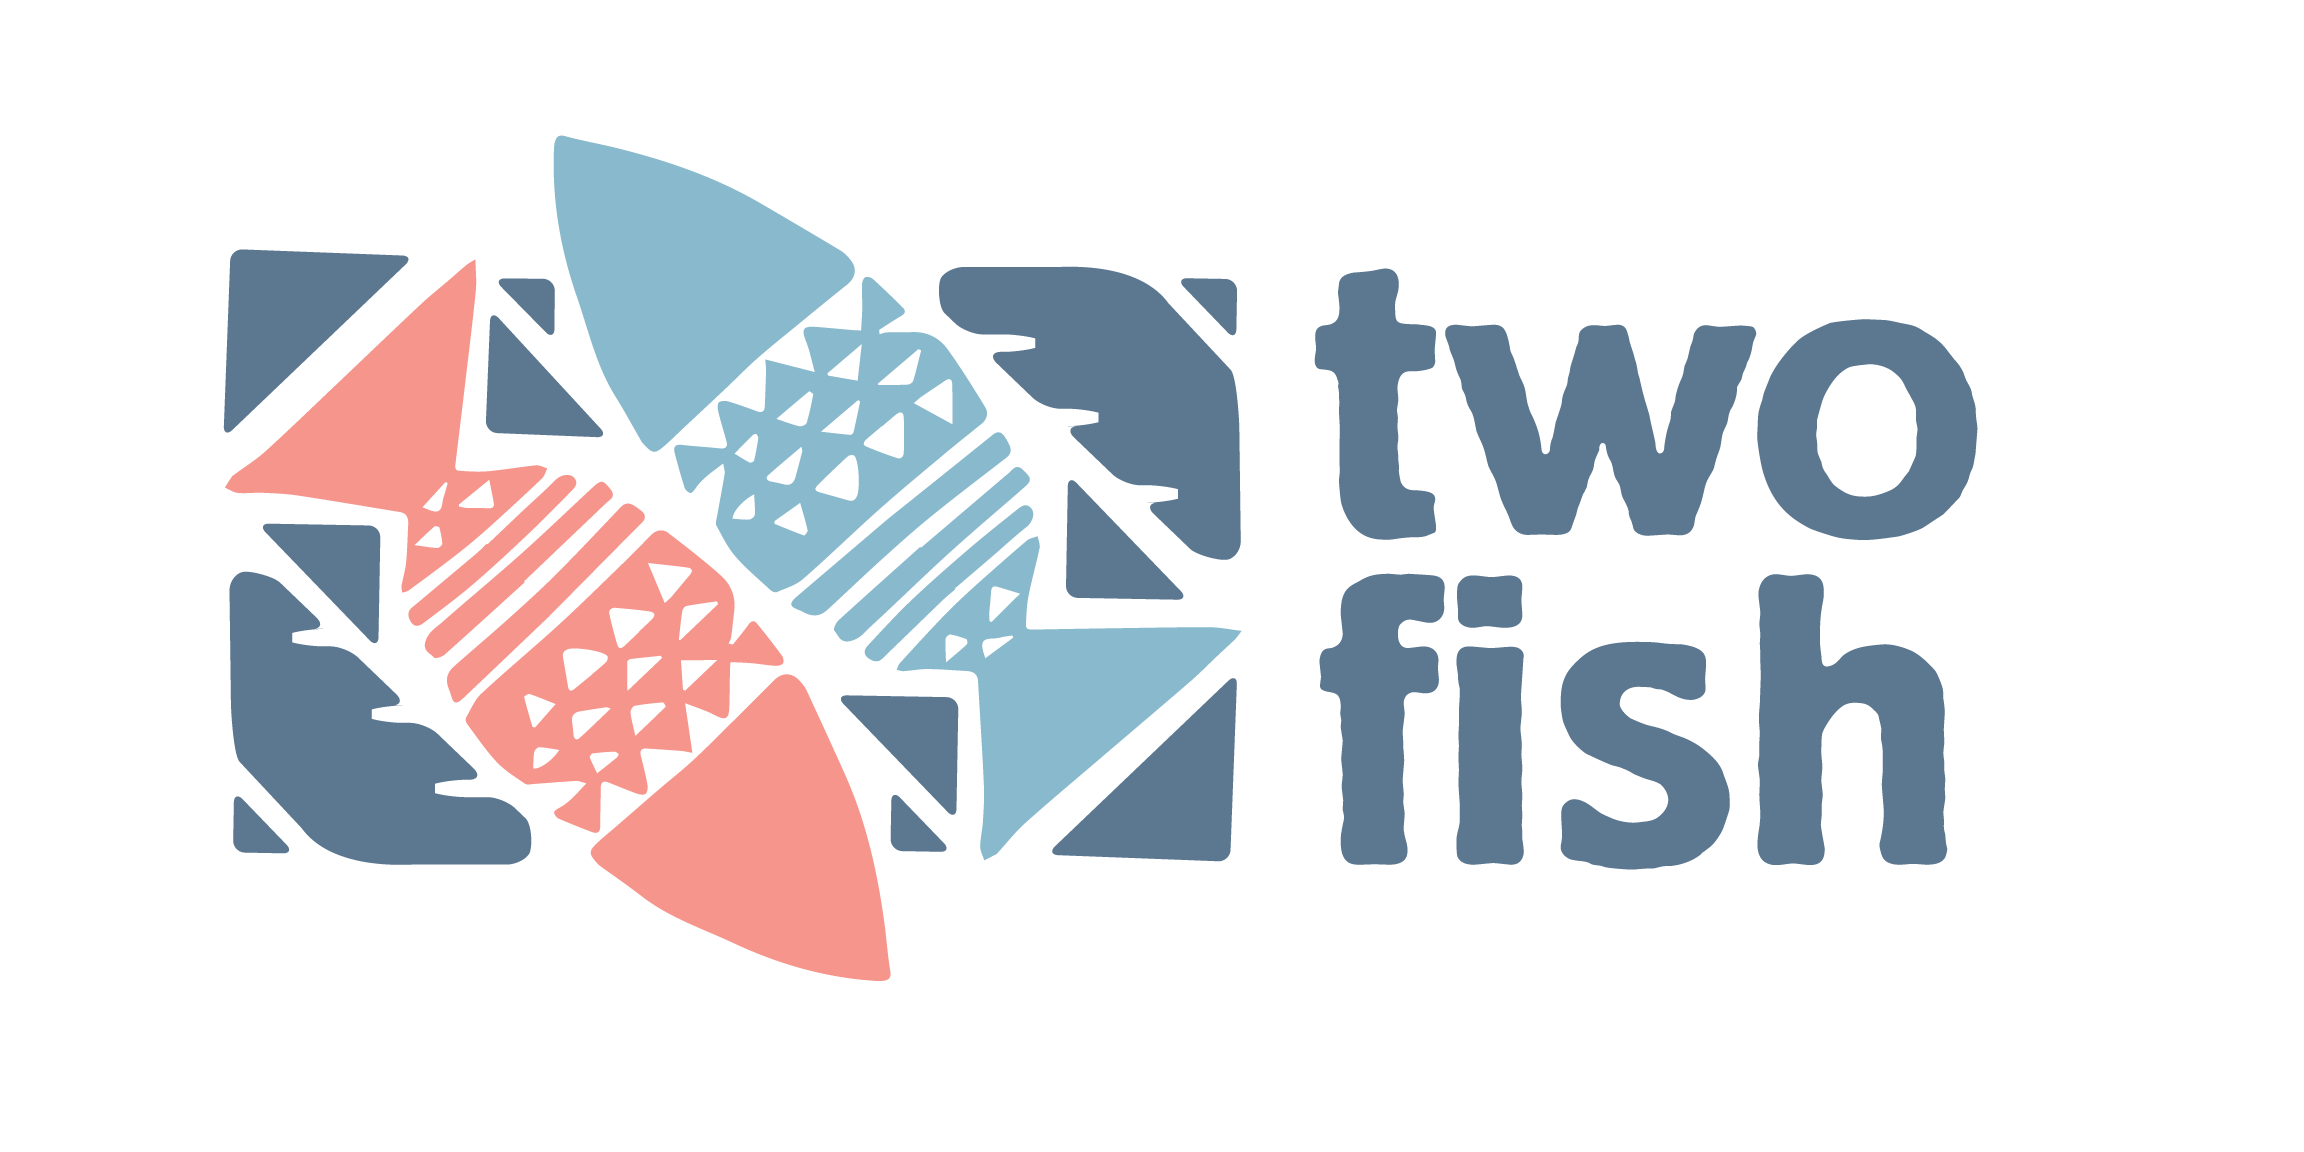 TWO-FISH-4C-HORIZ---LG.png